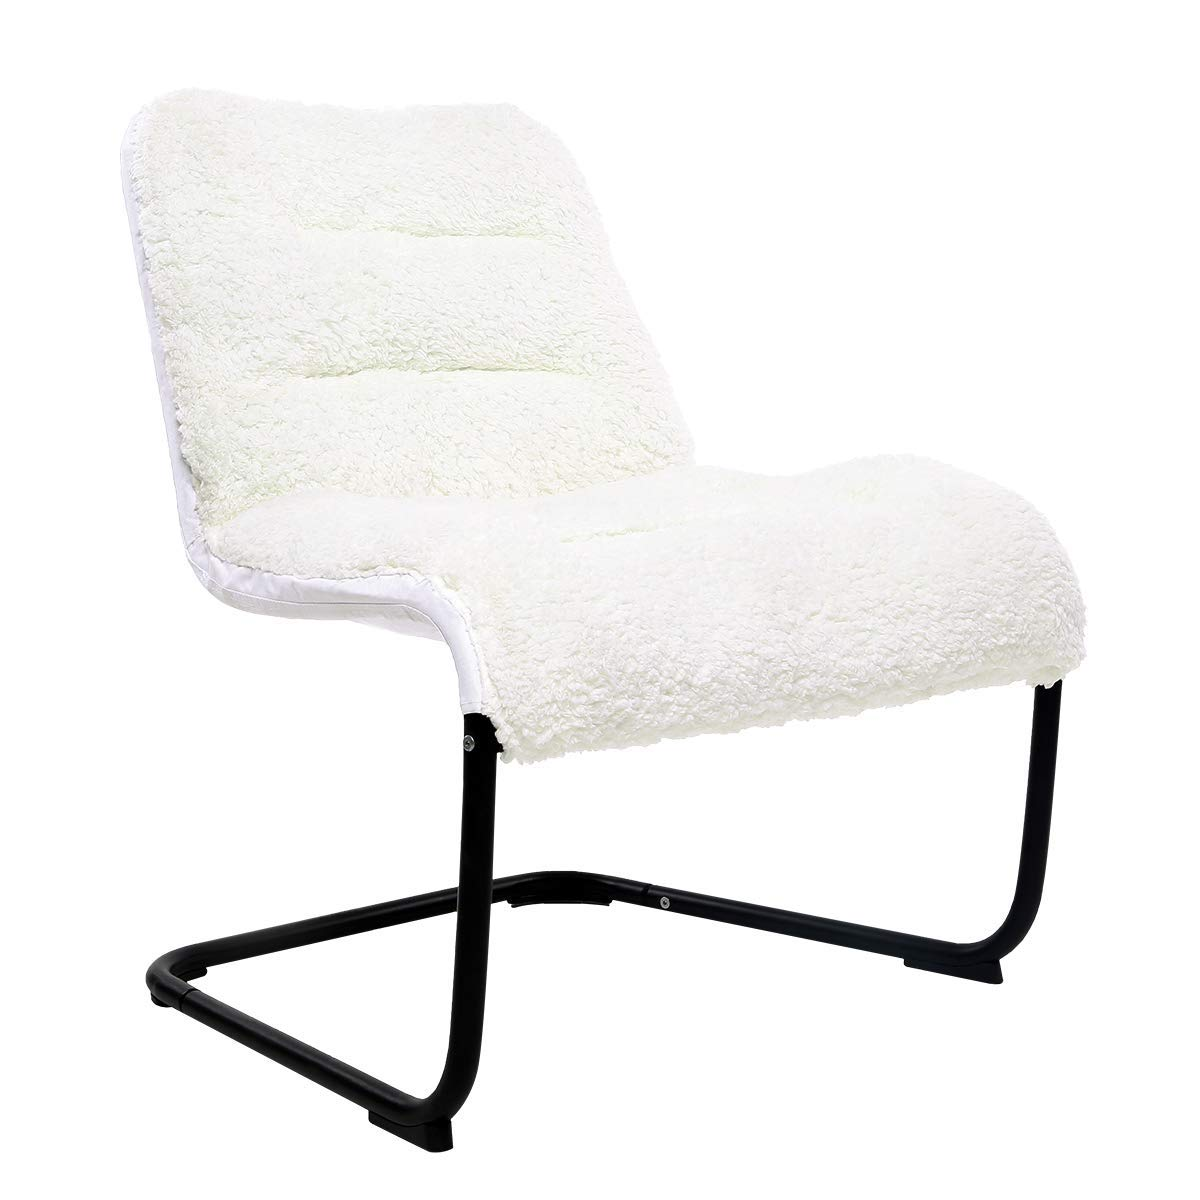 Comfortable Padded Collapsible Oversized Lounge Accent Chair White Sherpa Soft Cushion for Living Room Dorm Bedroom Patio Playroom Teen's Dens